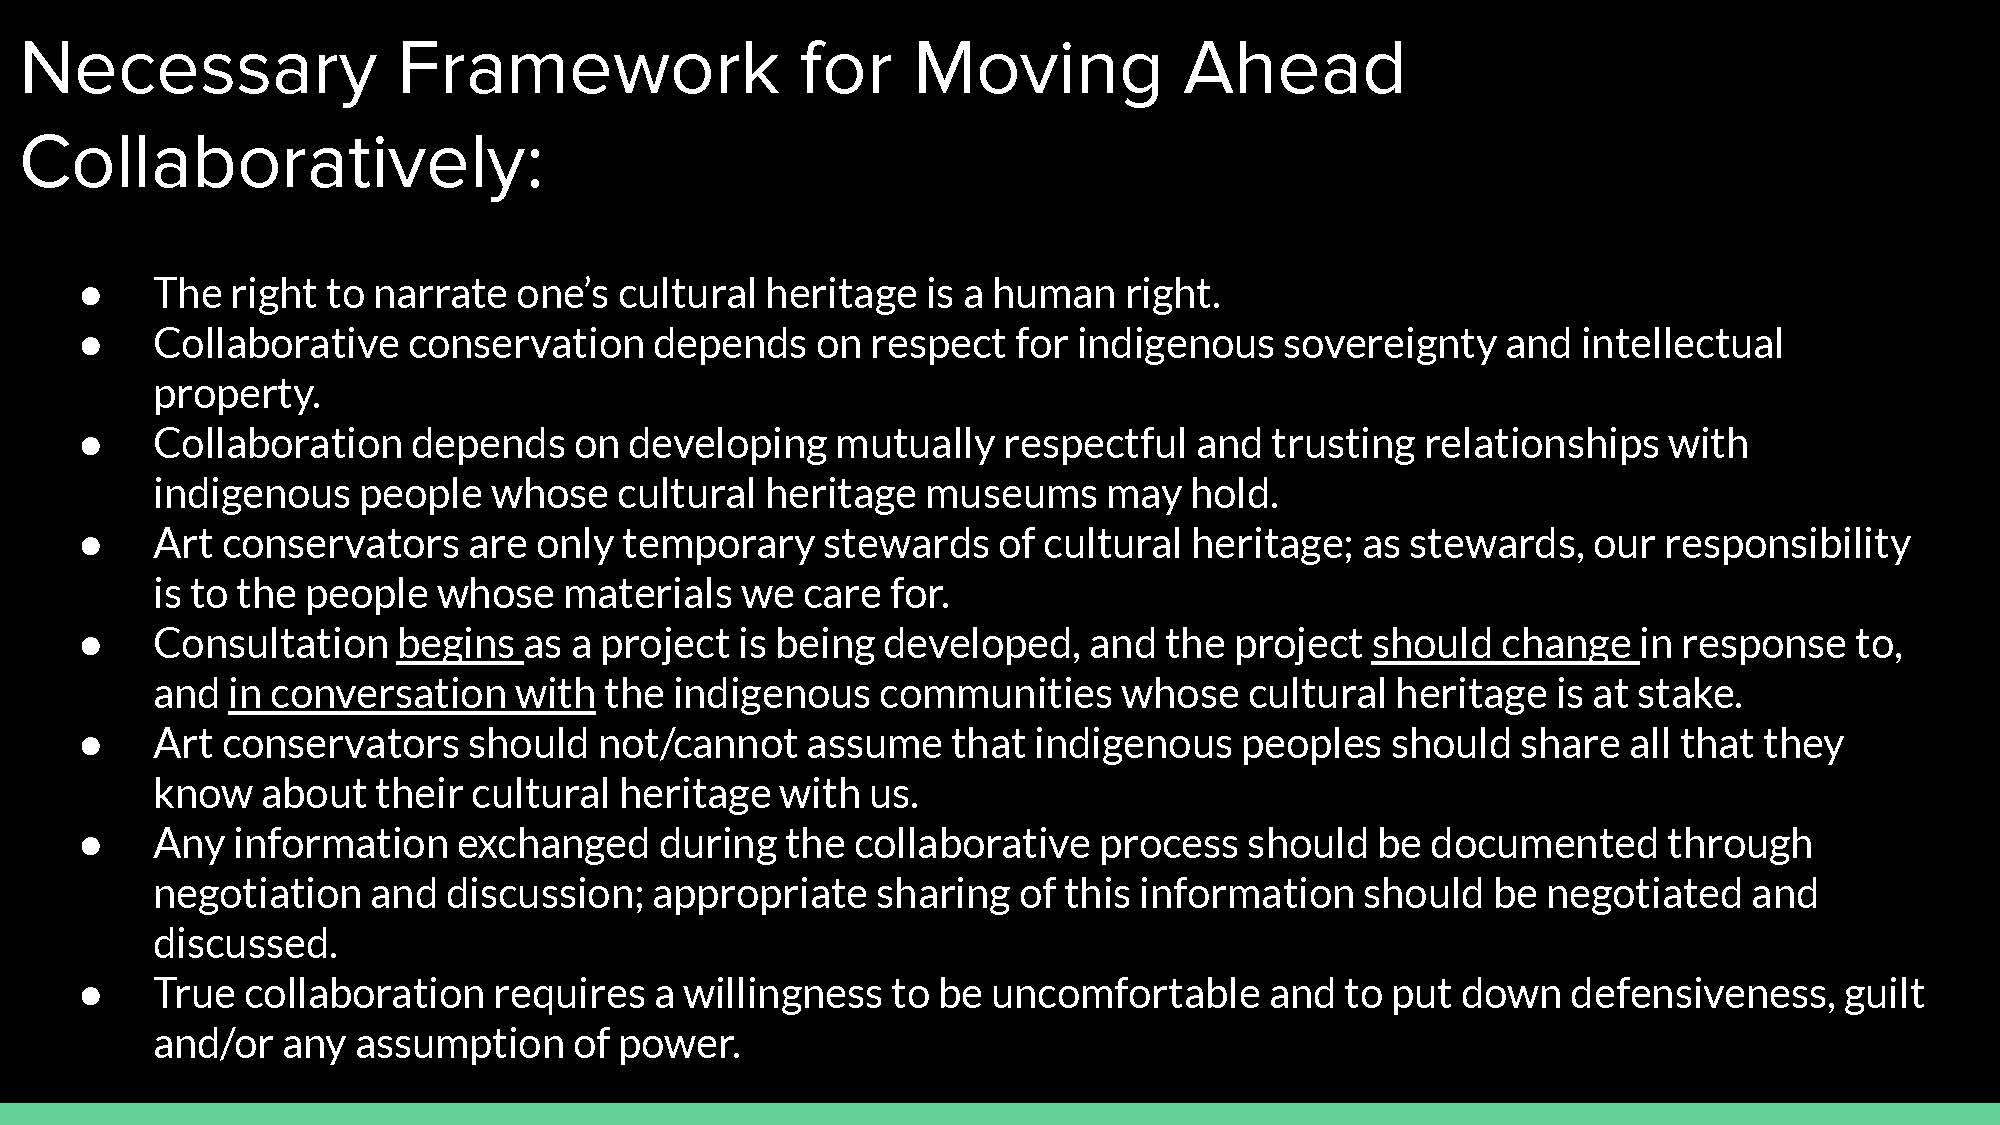 Untold Stories 2019_ Indigenous Futures and Collaborative Conservation_Page_08.jpg